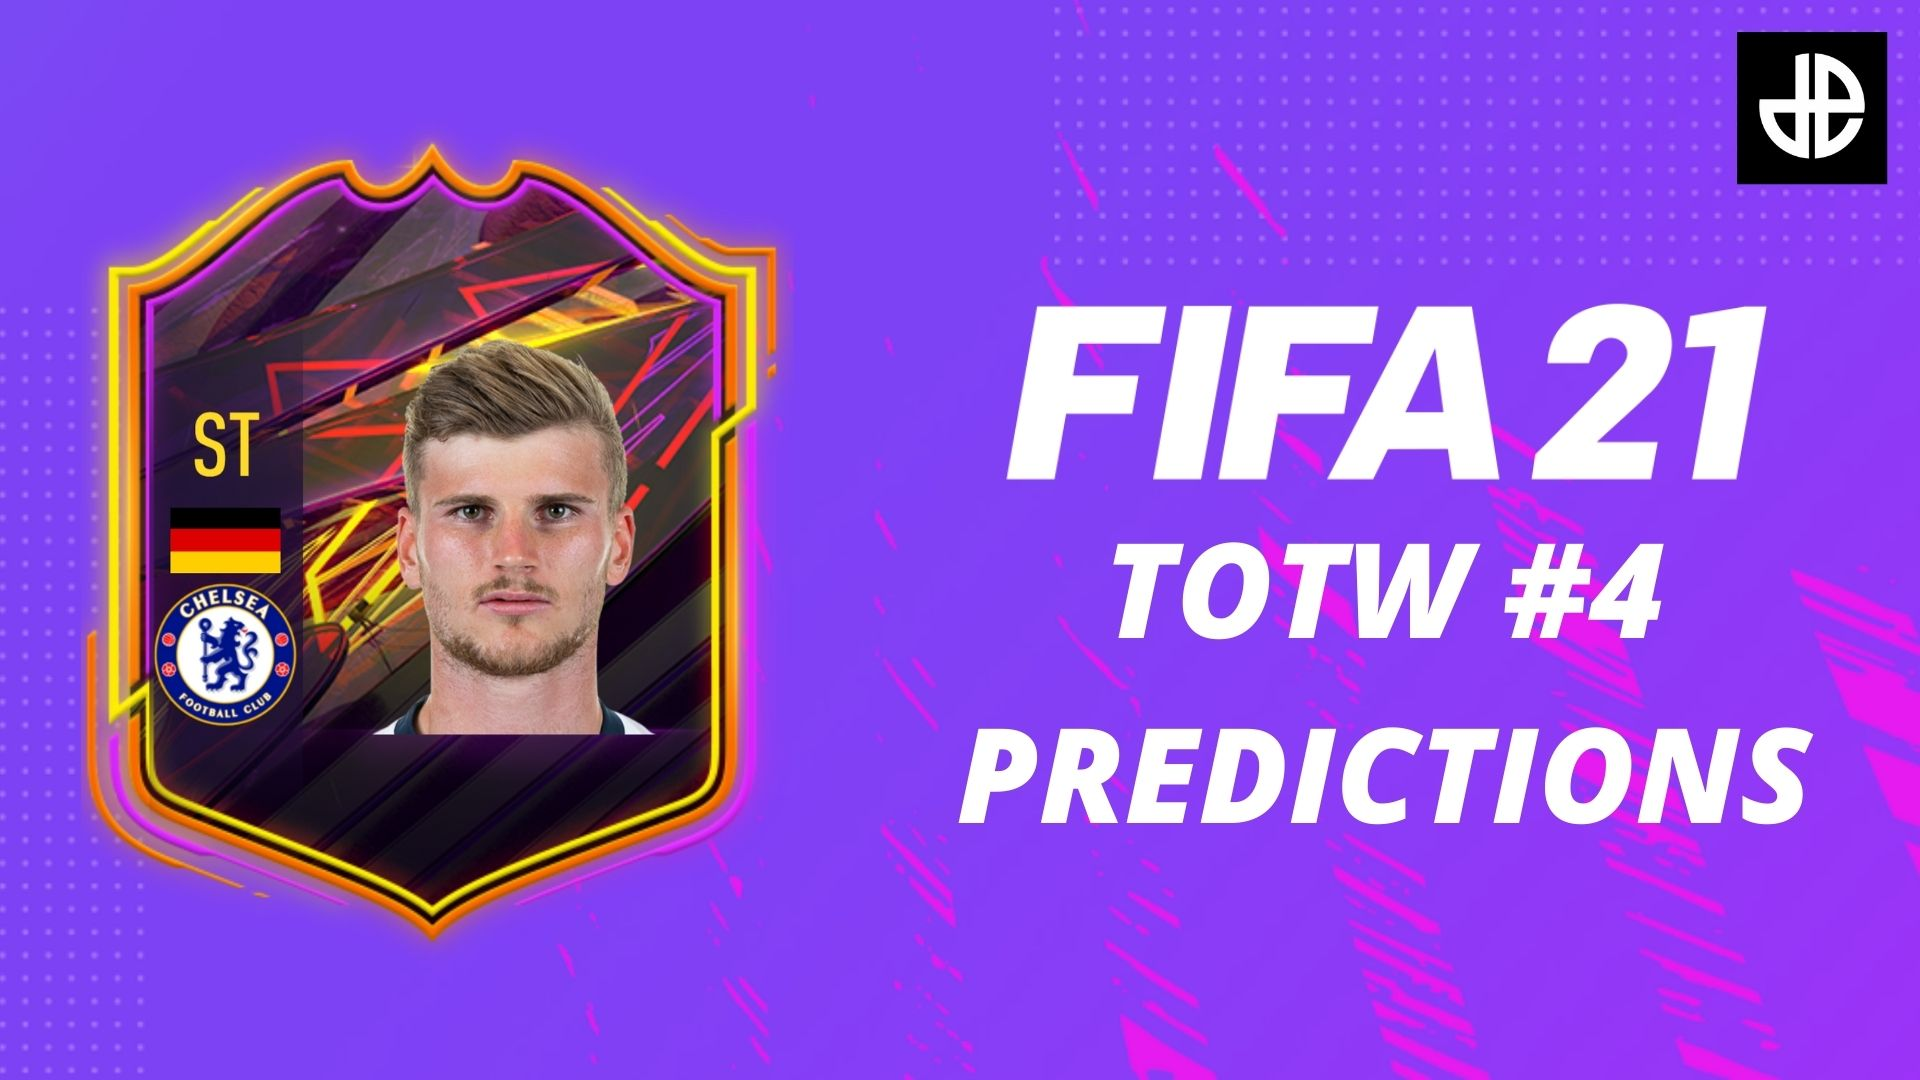 Timo Werner OTW FIFA 21 card with a purple background